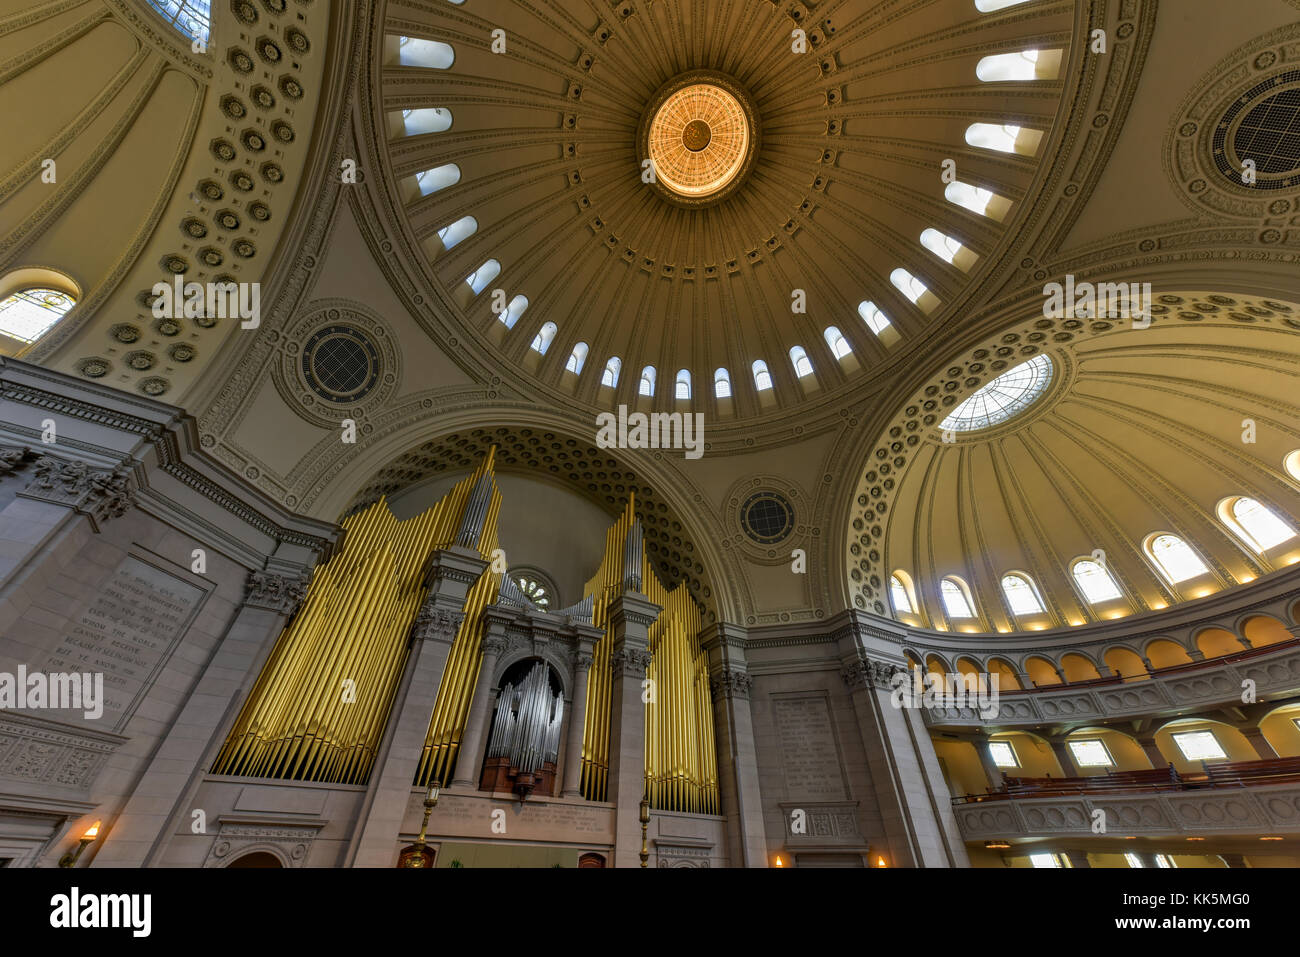 Boston, Massachusetts - Sept 4, 2016: Interior of the First Church of Christ Scientist, the mother church of Christian - Stock Image